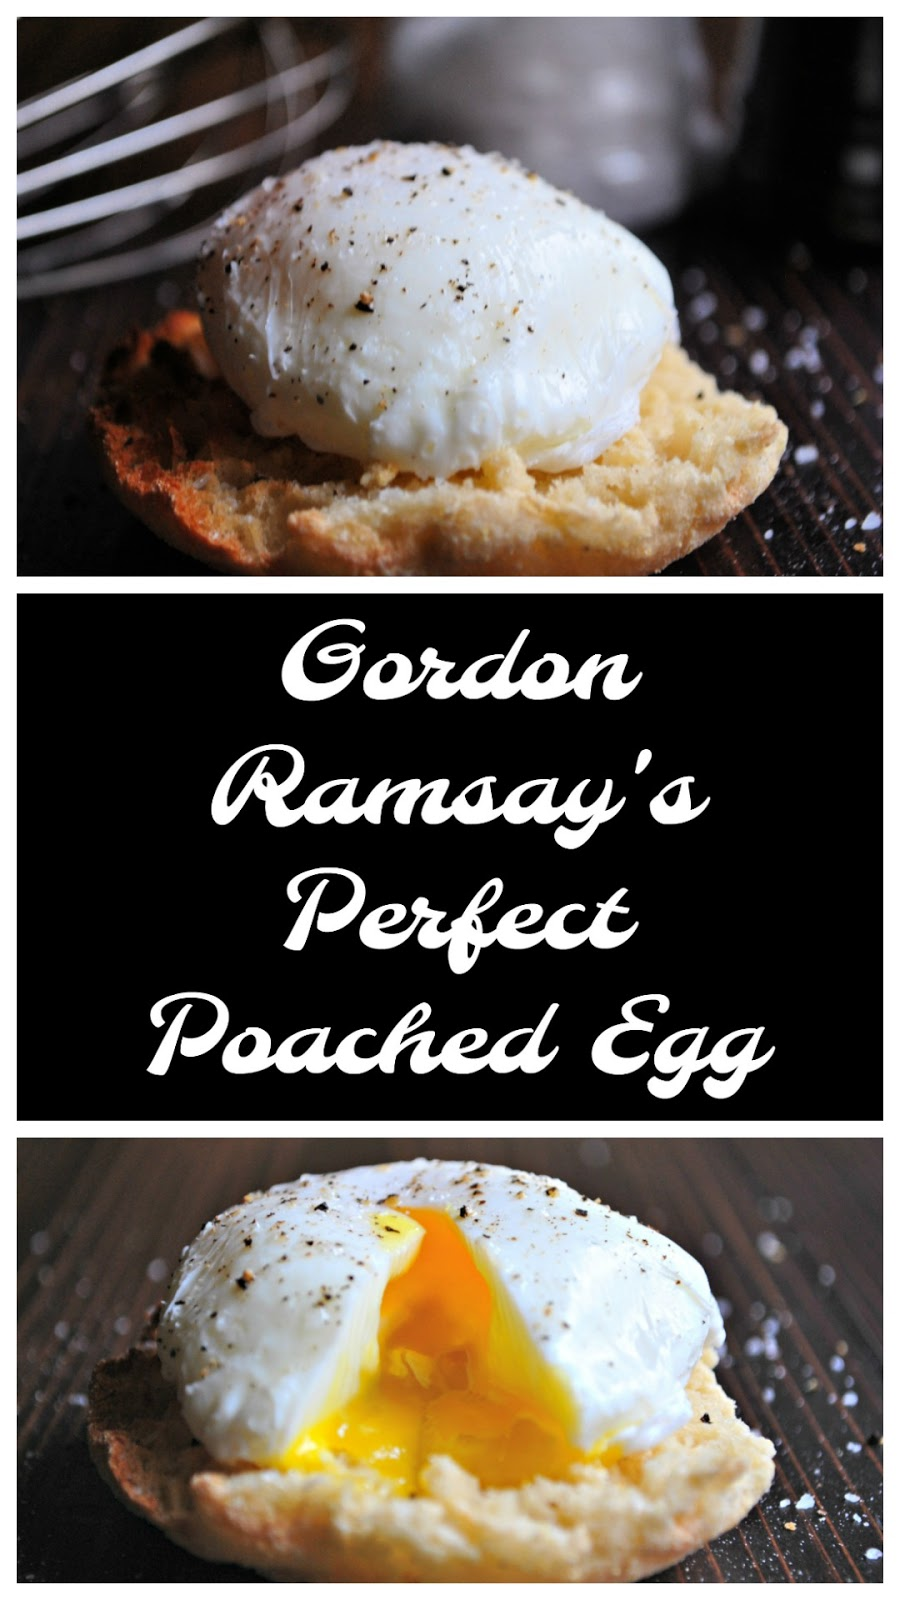 Gordon Ramsay's Perfect Poached Breakfast Egg